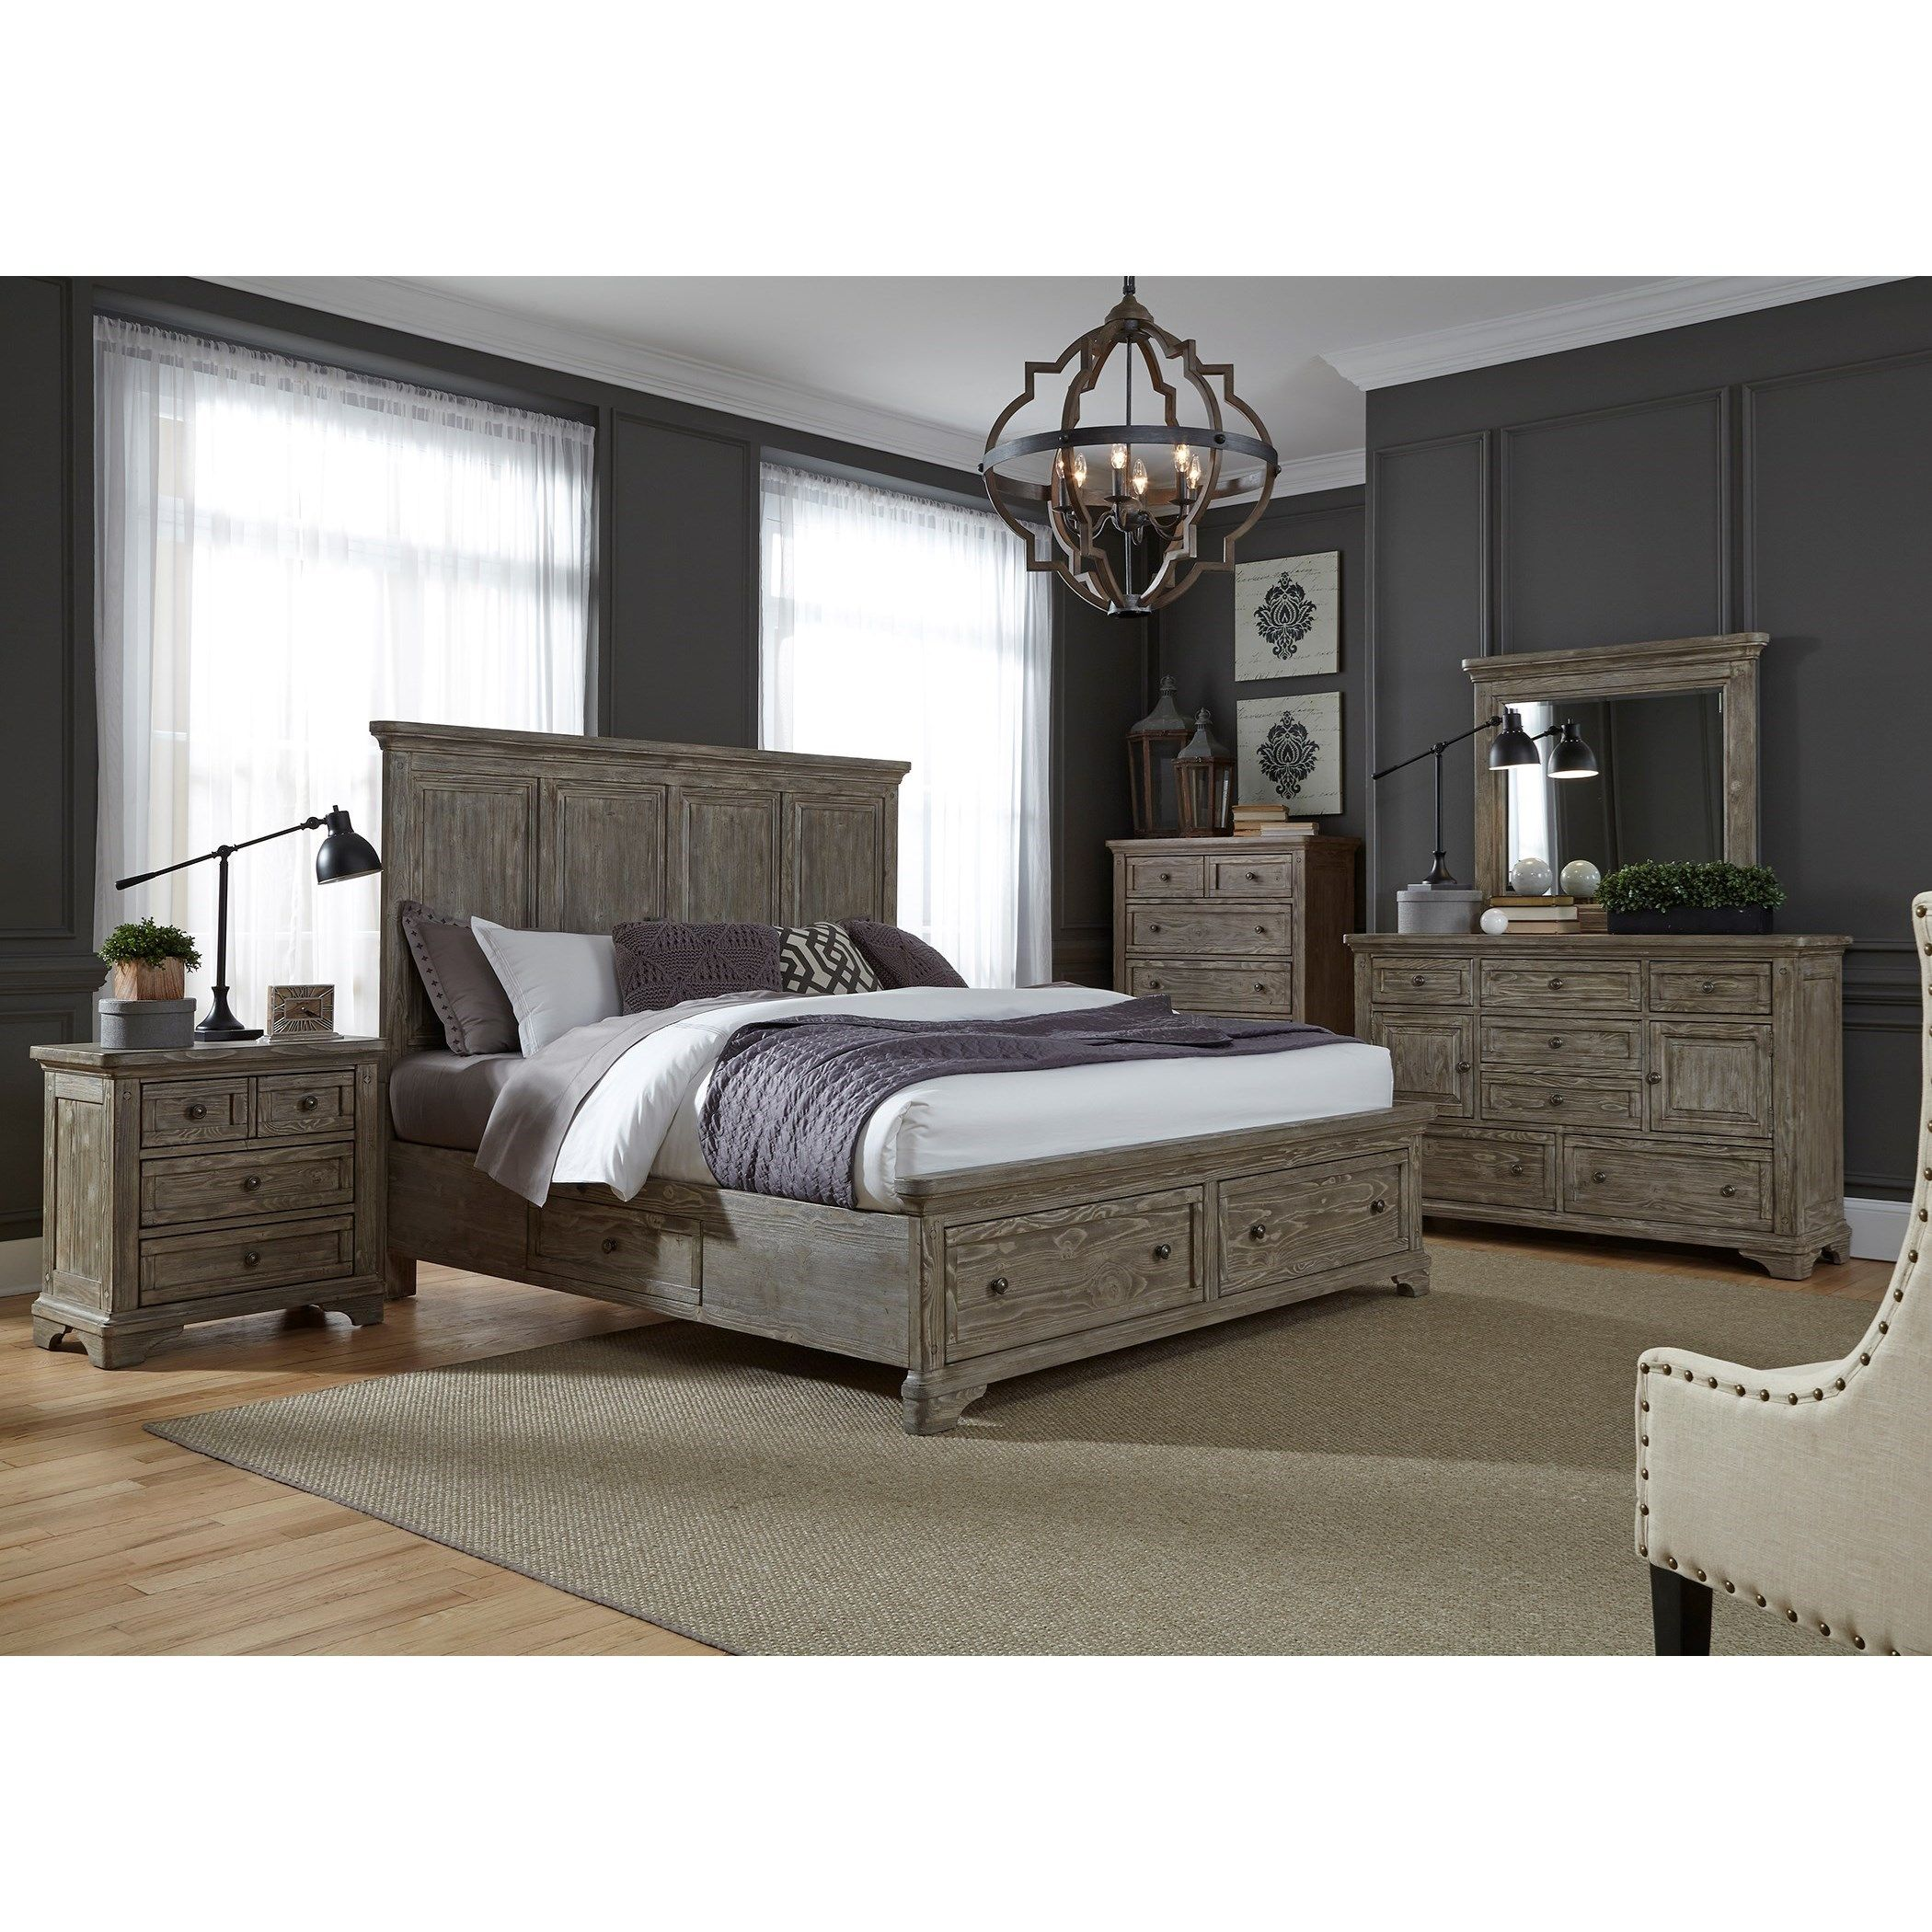 explore king bedroom bedroom sets and more